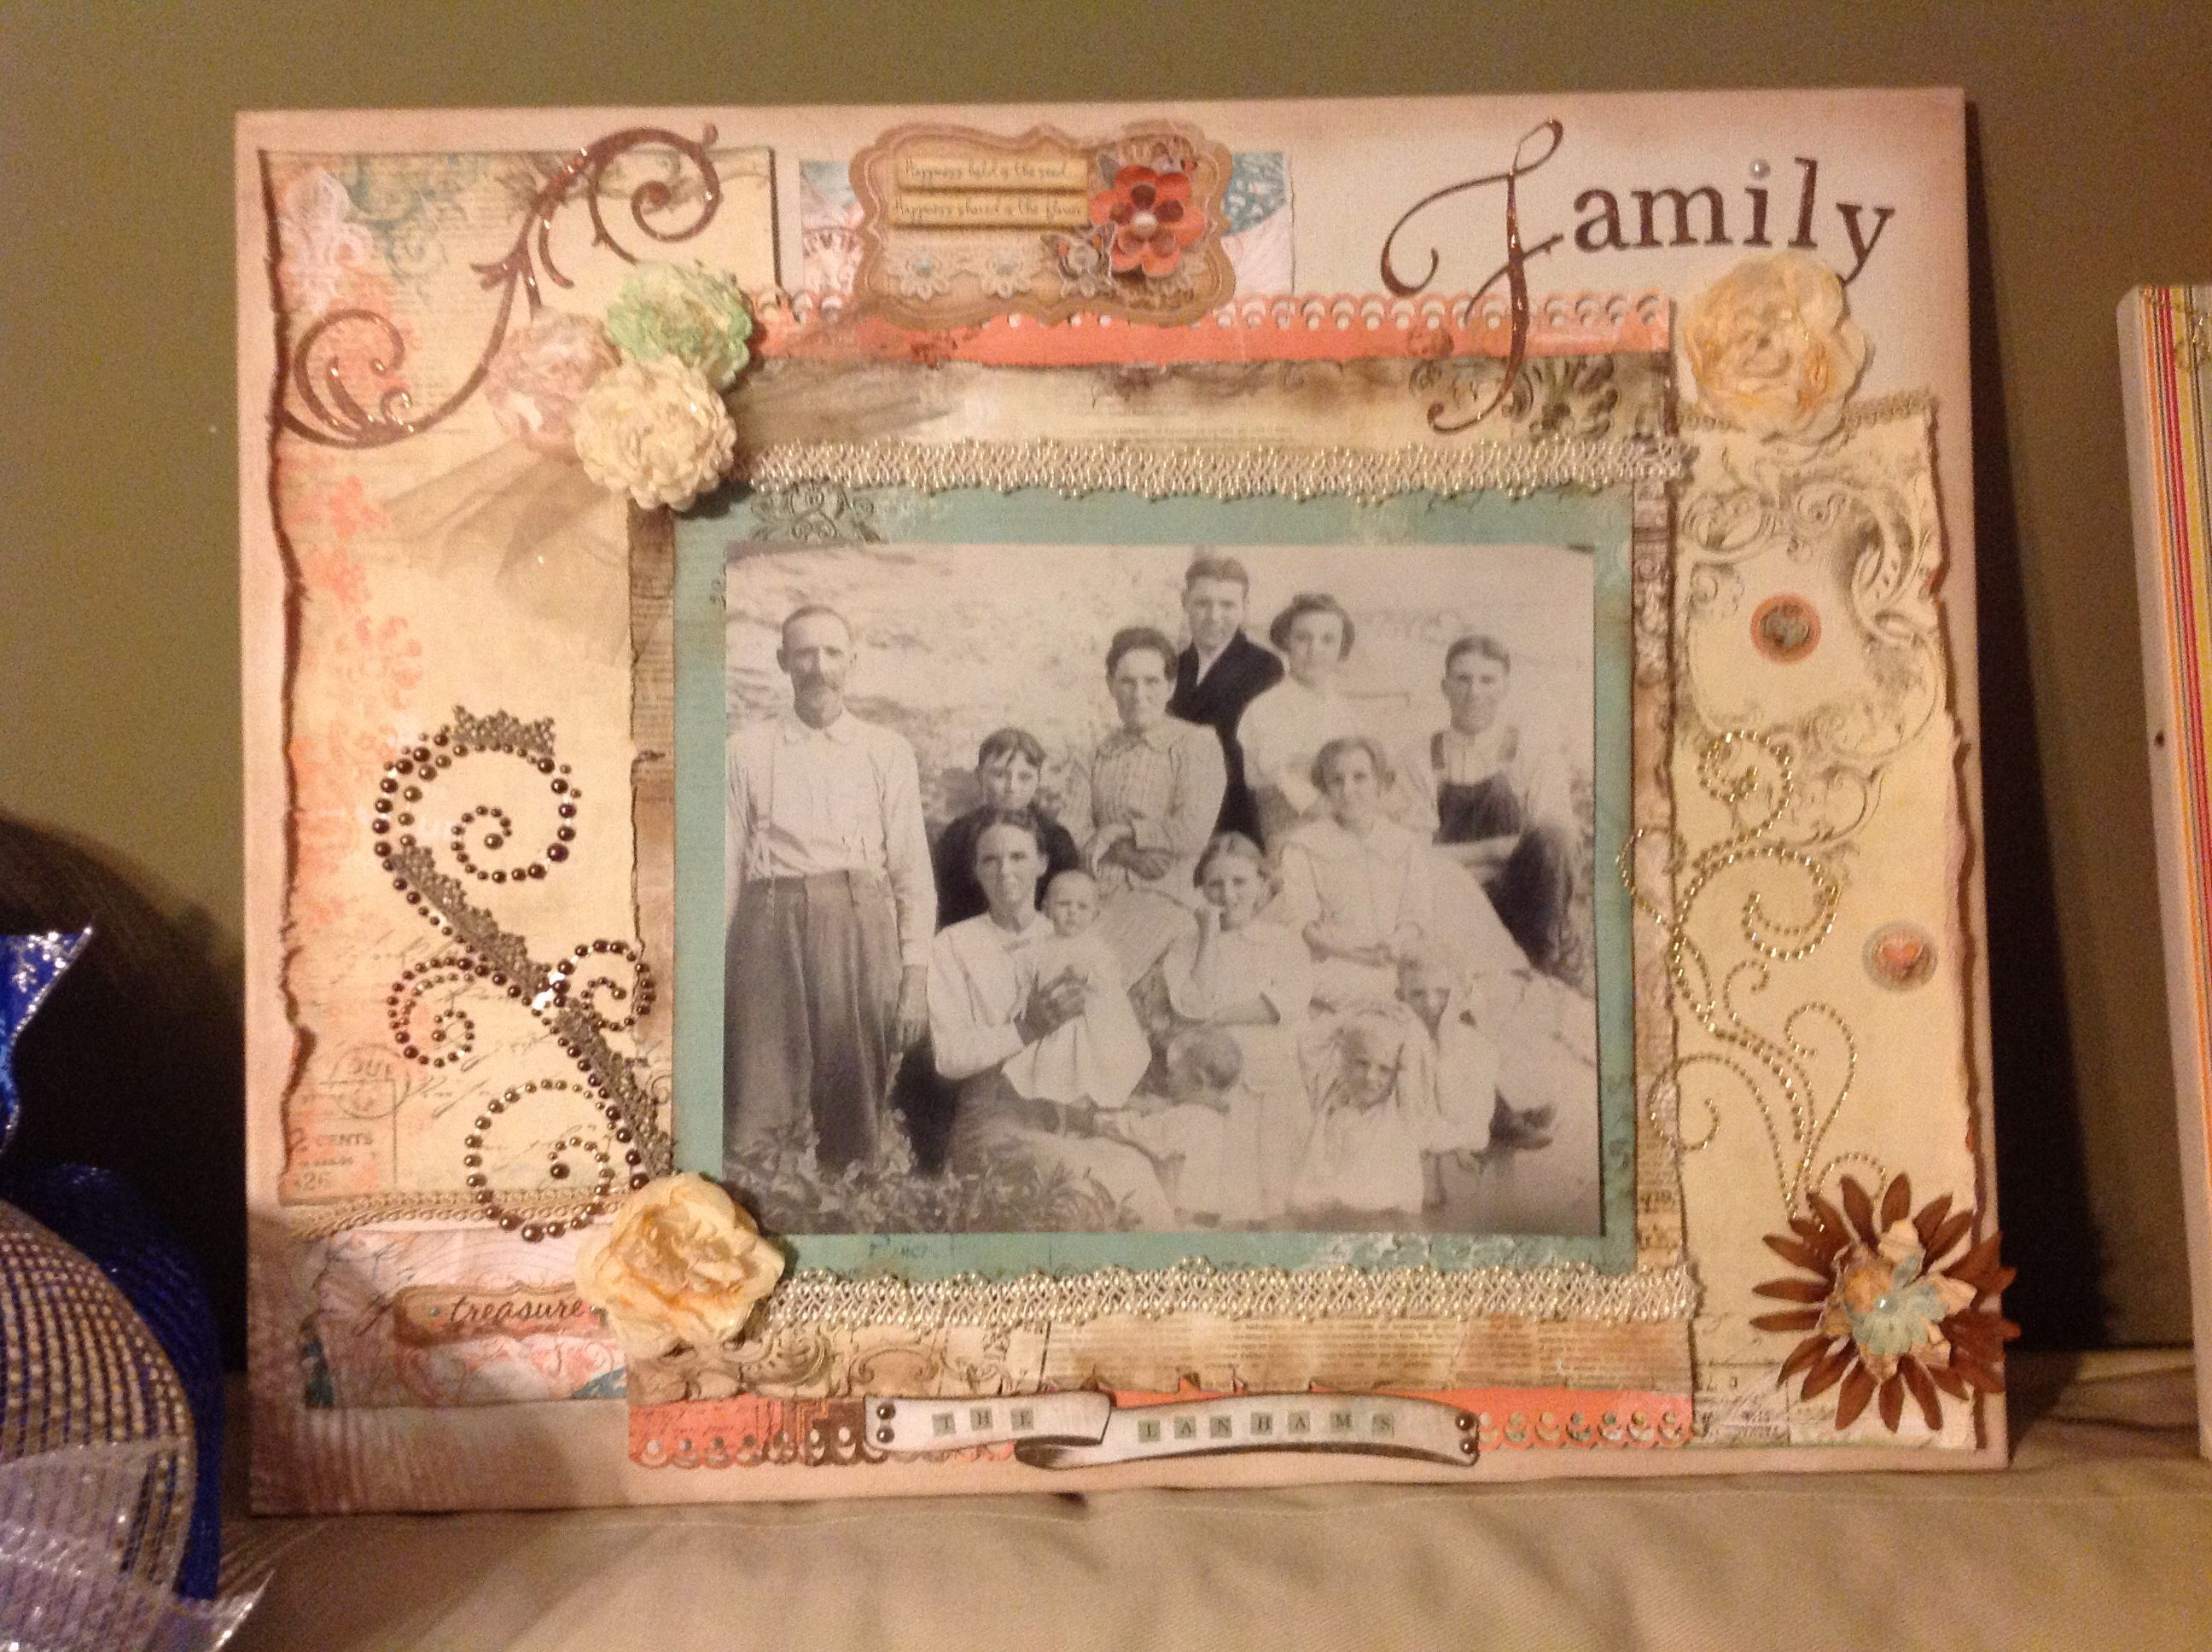 How to scrapbook canvas - Scrapbook Canvas That I Made With An Old Family Portrait That My Aunt Lois Gave Me